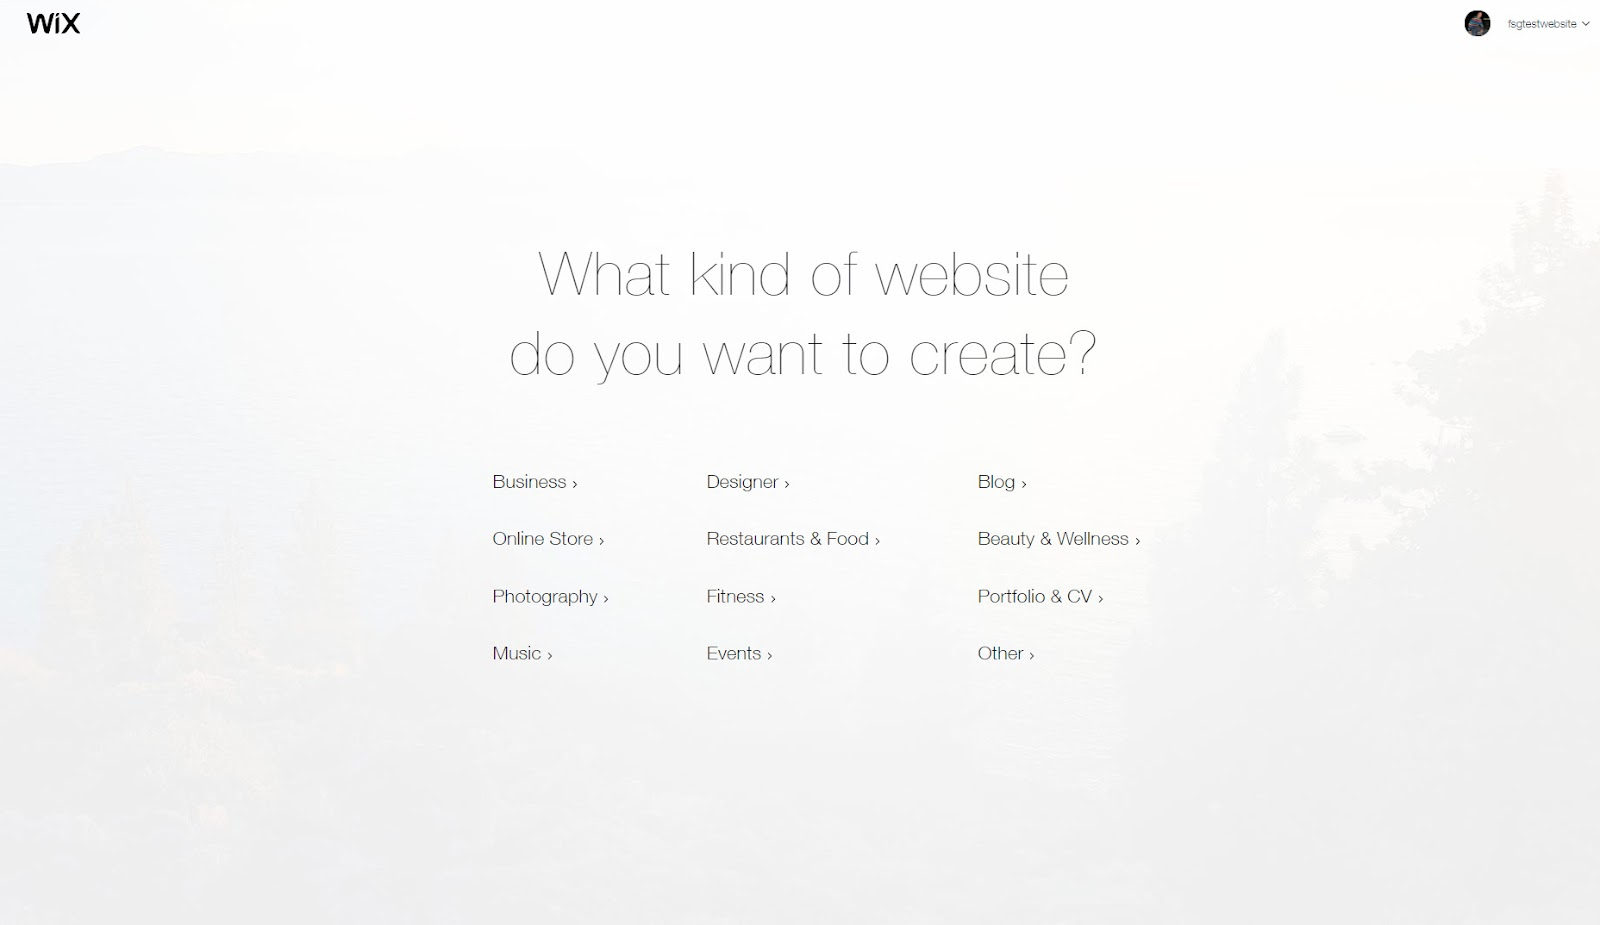 choose what kind a wix website you want